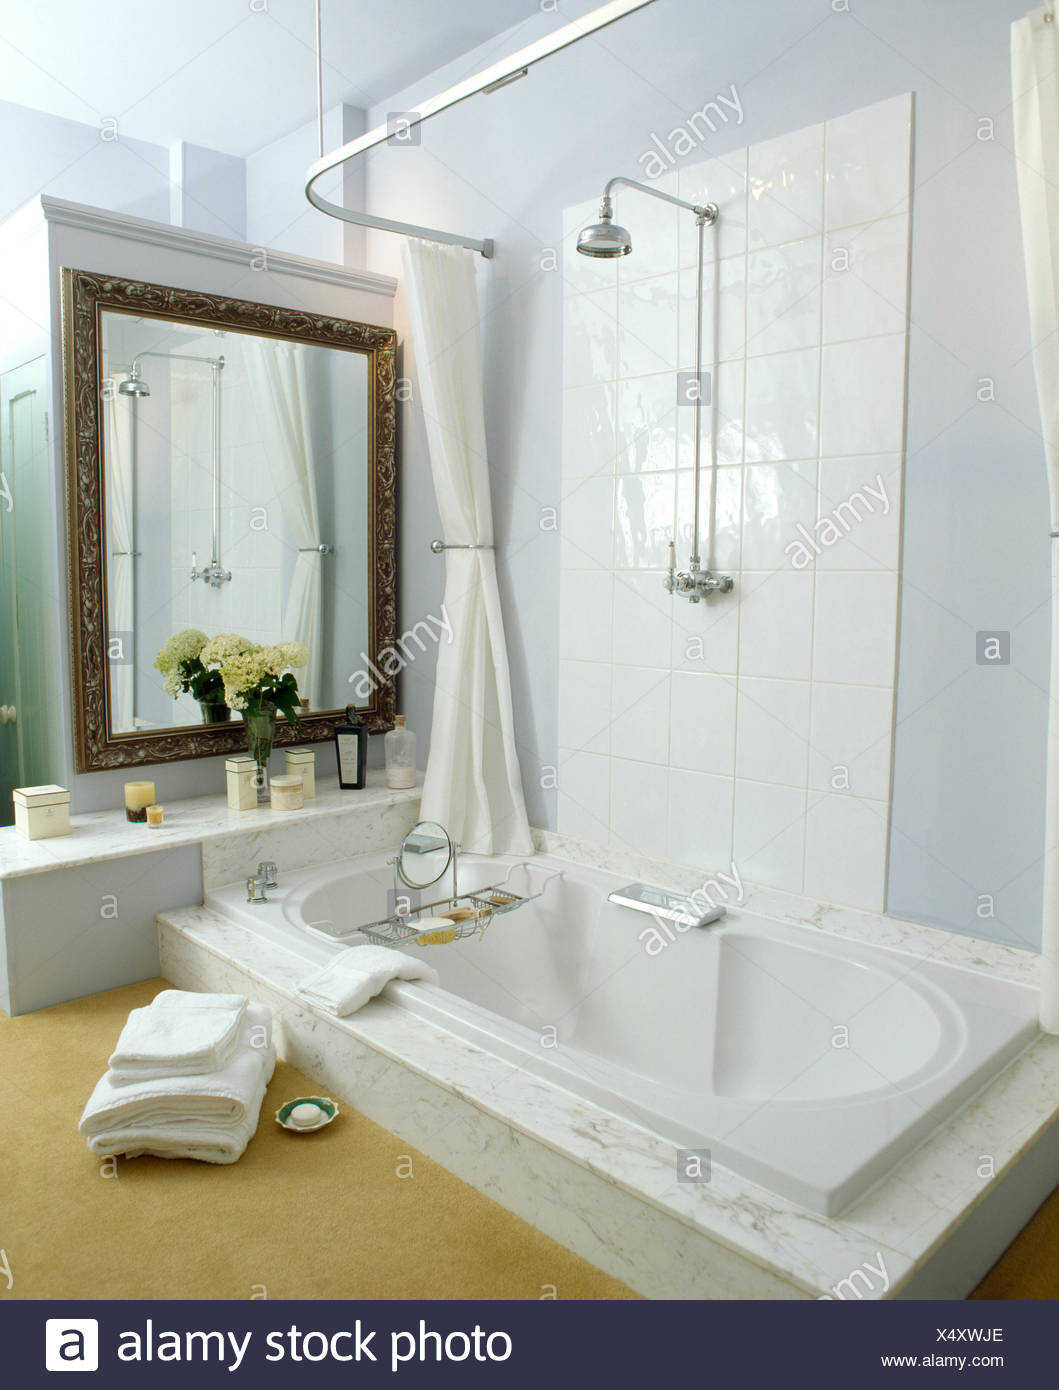 Pile of white towels beside bath with chrome shower in modern white ...